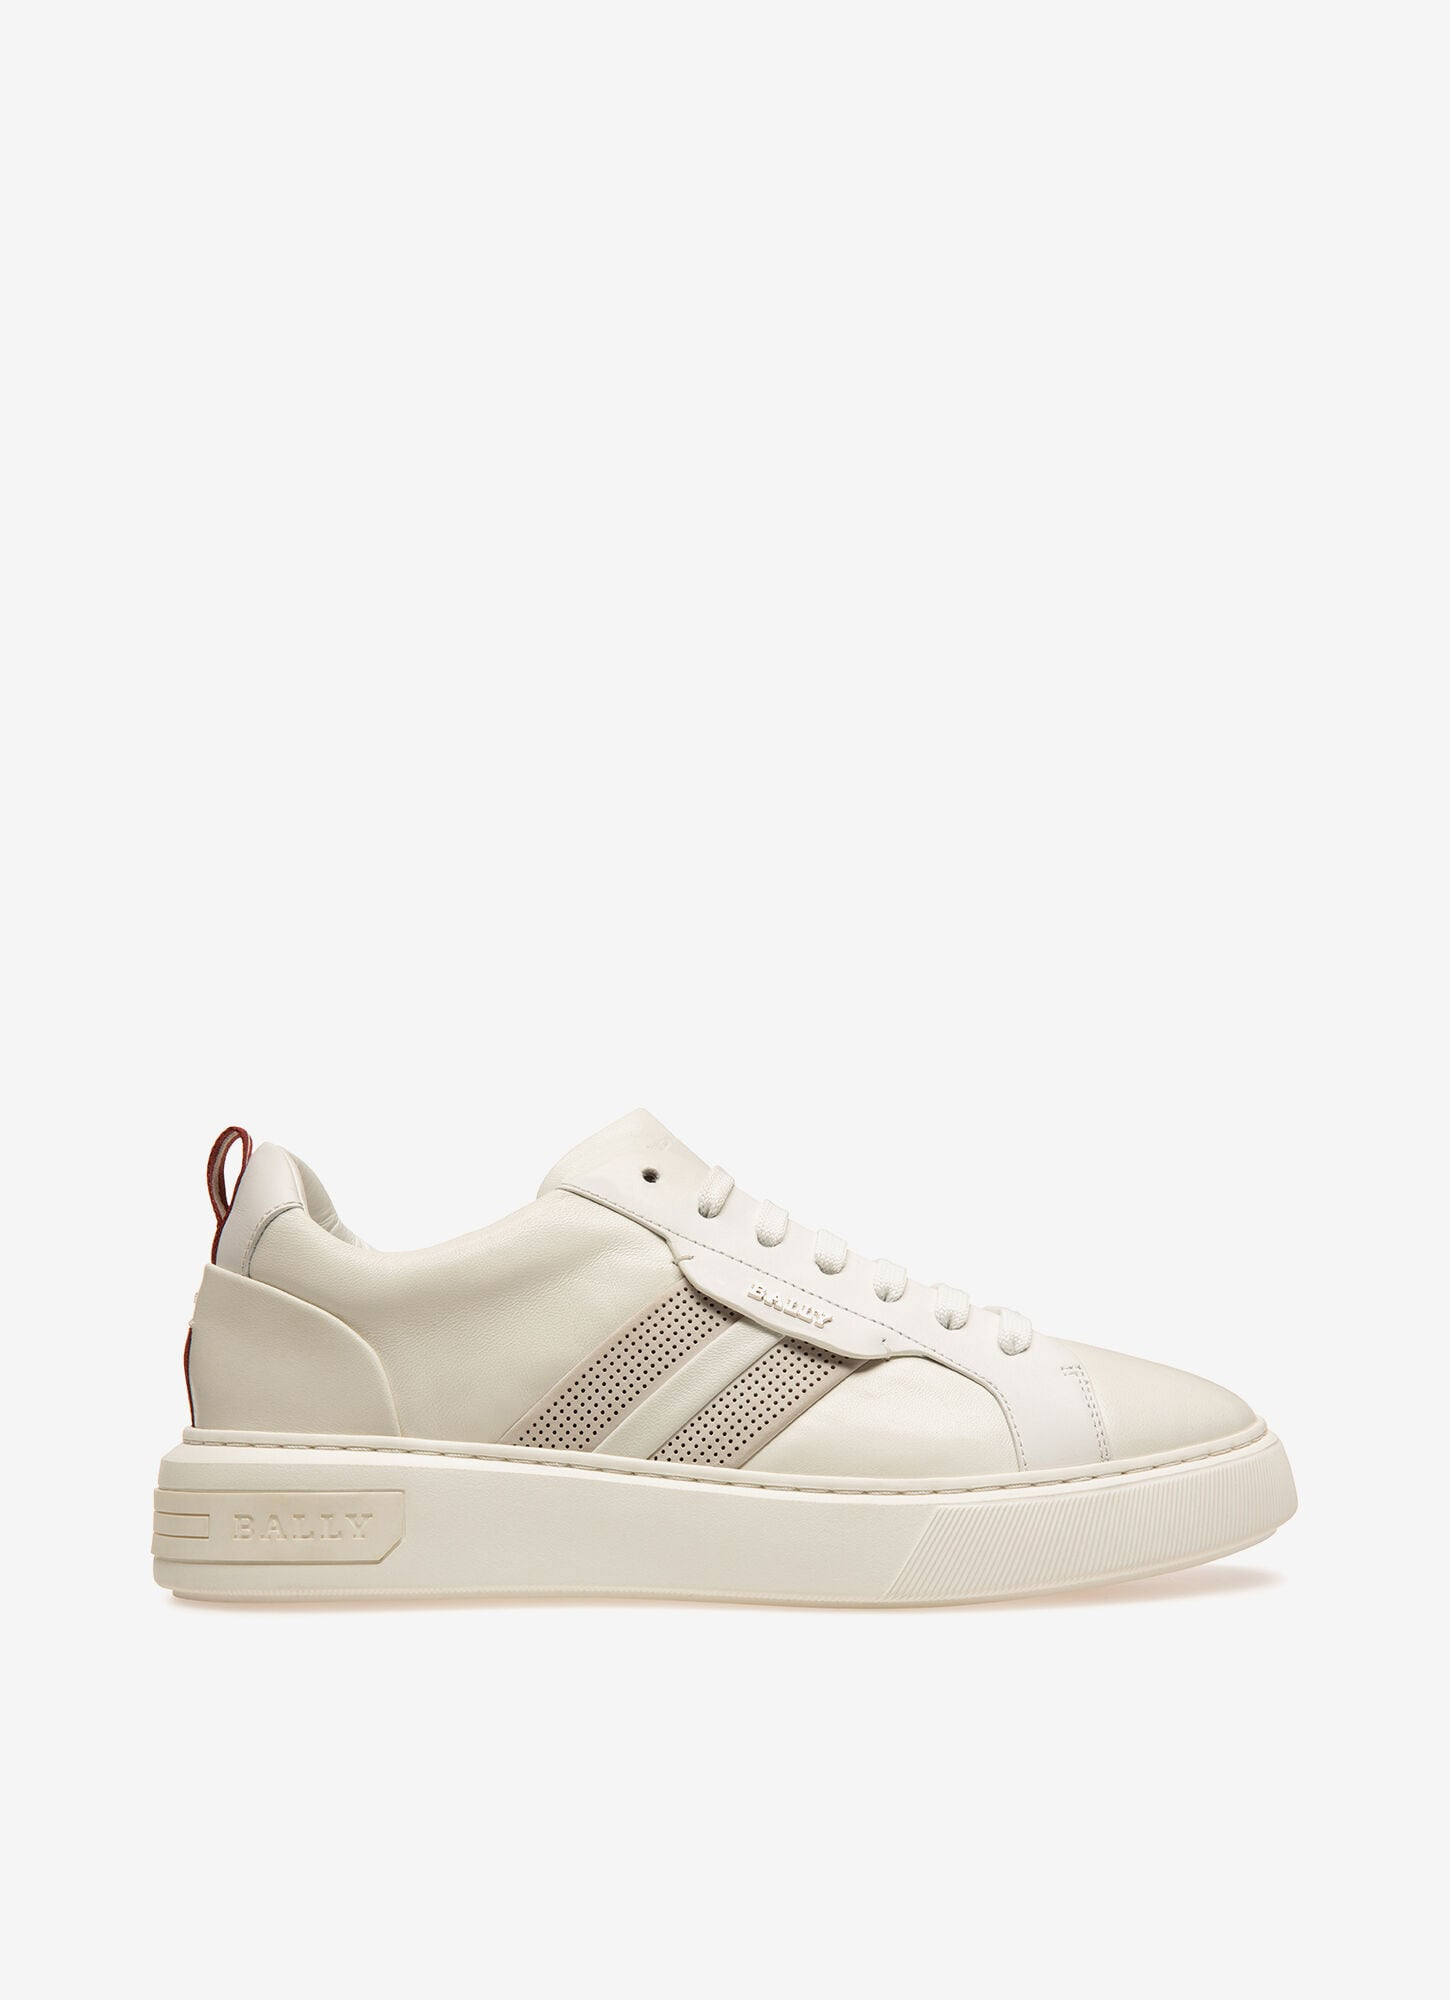 Maxim| Mens Sneakers | White Leather